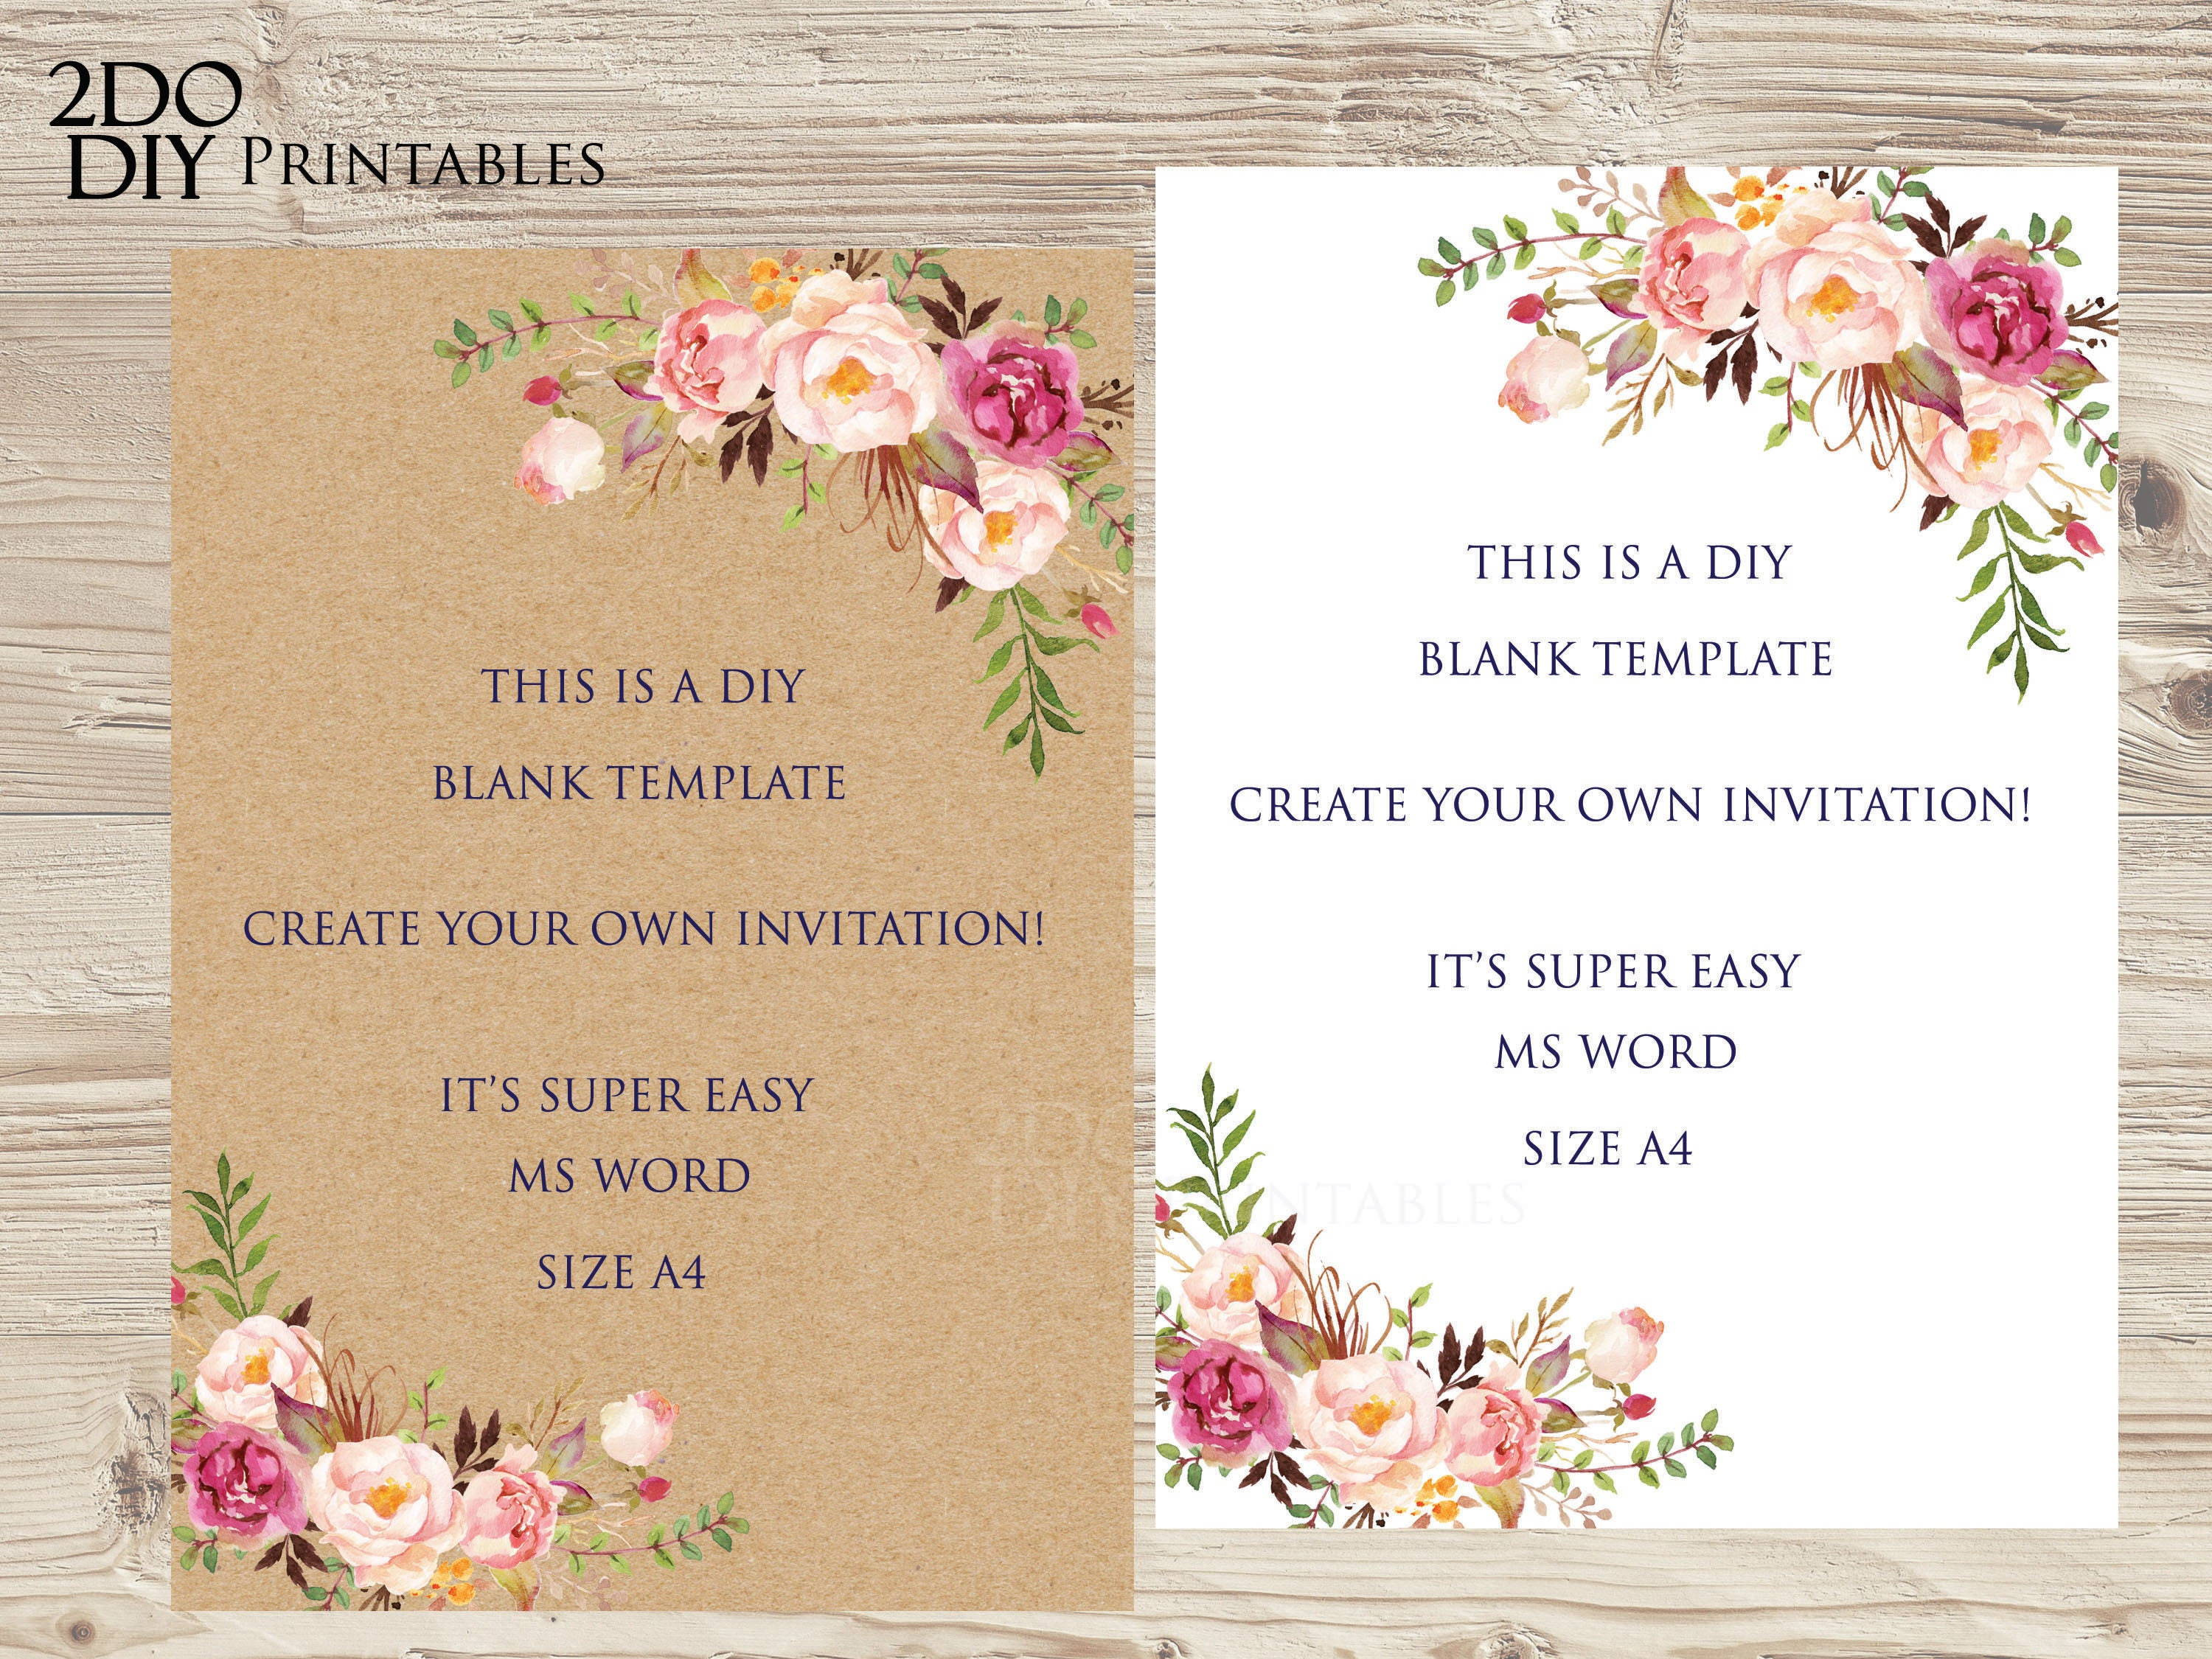 Floral Edit Yourself Invitation/ MS Word /Size A4/DIY Floral